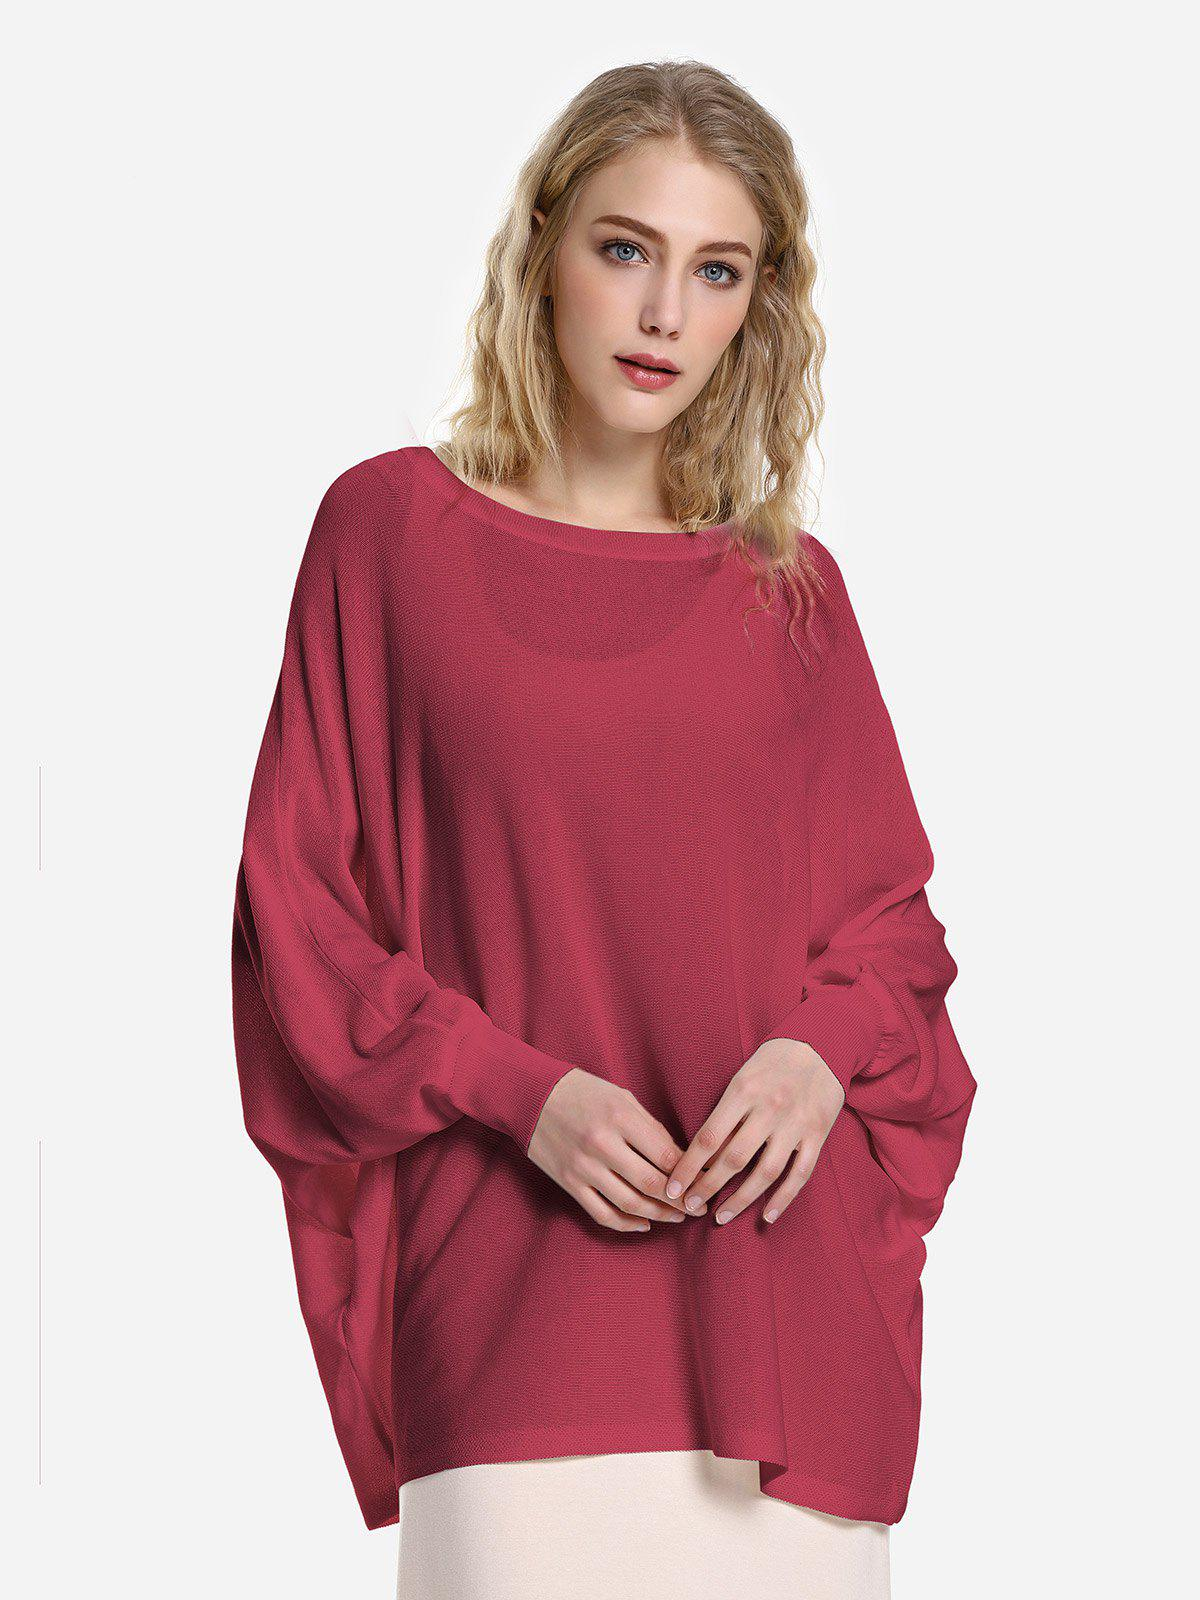 Best Long Sleeve Round Neck Top